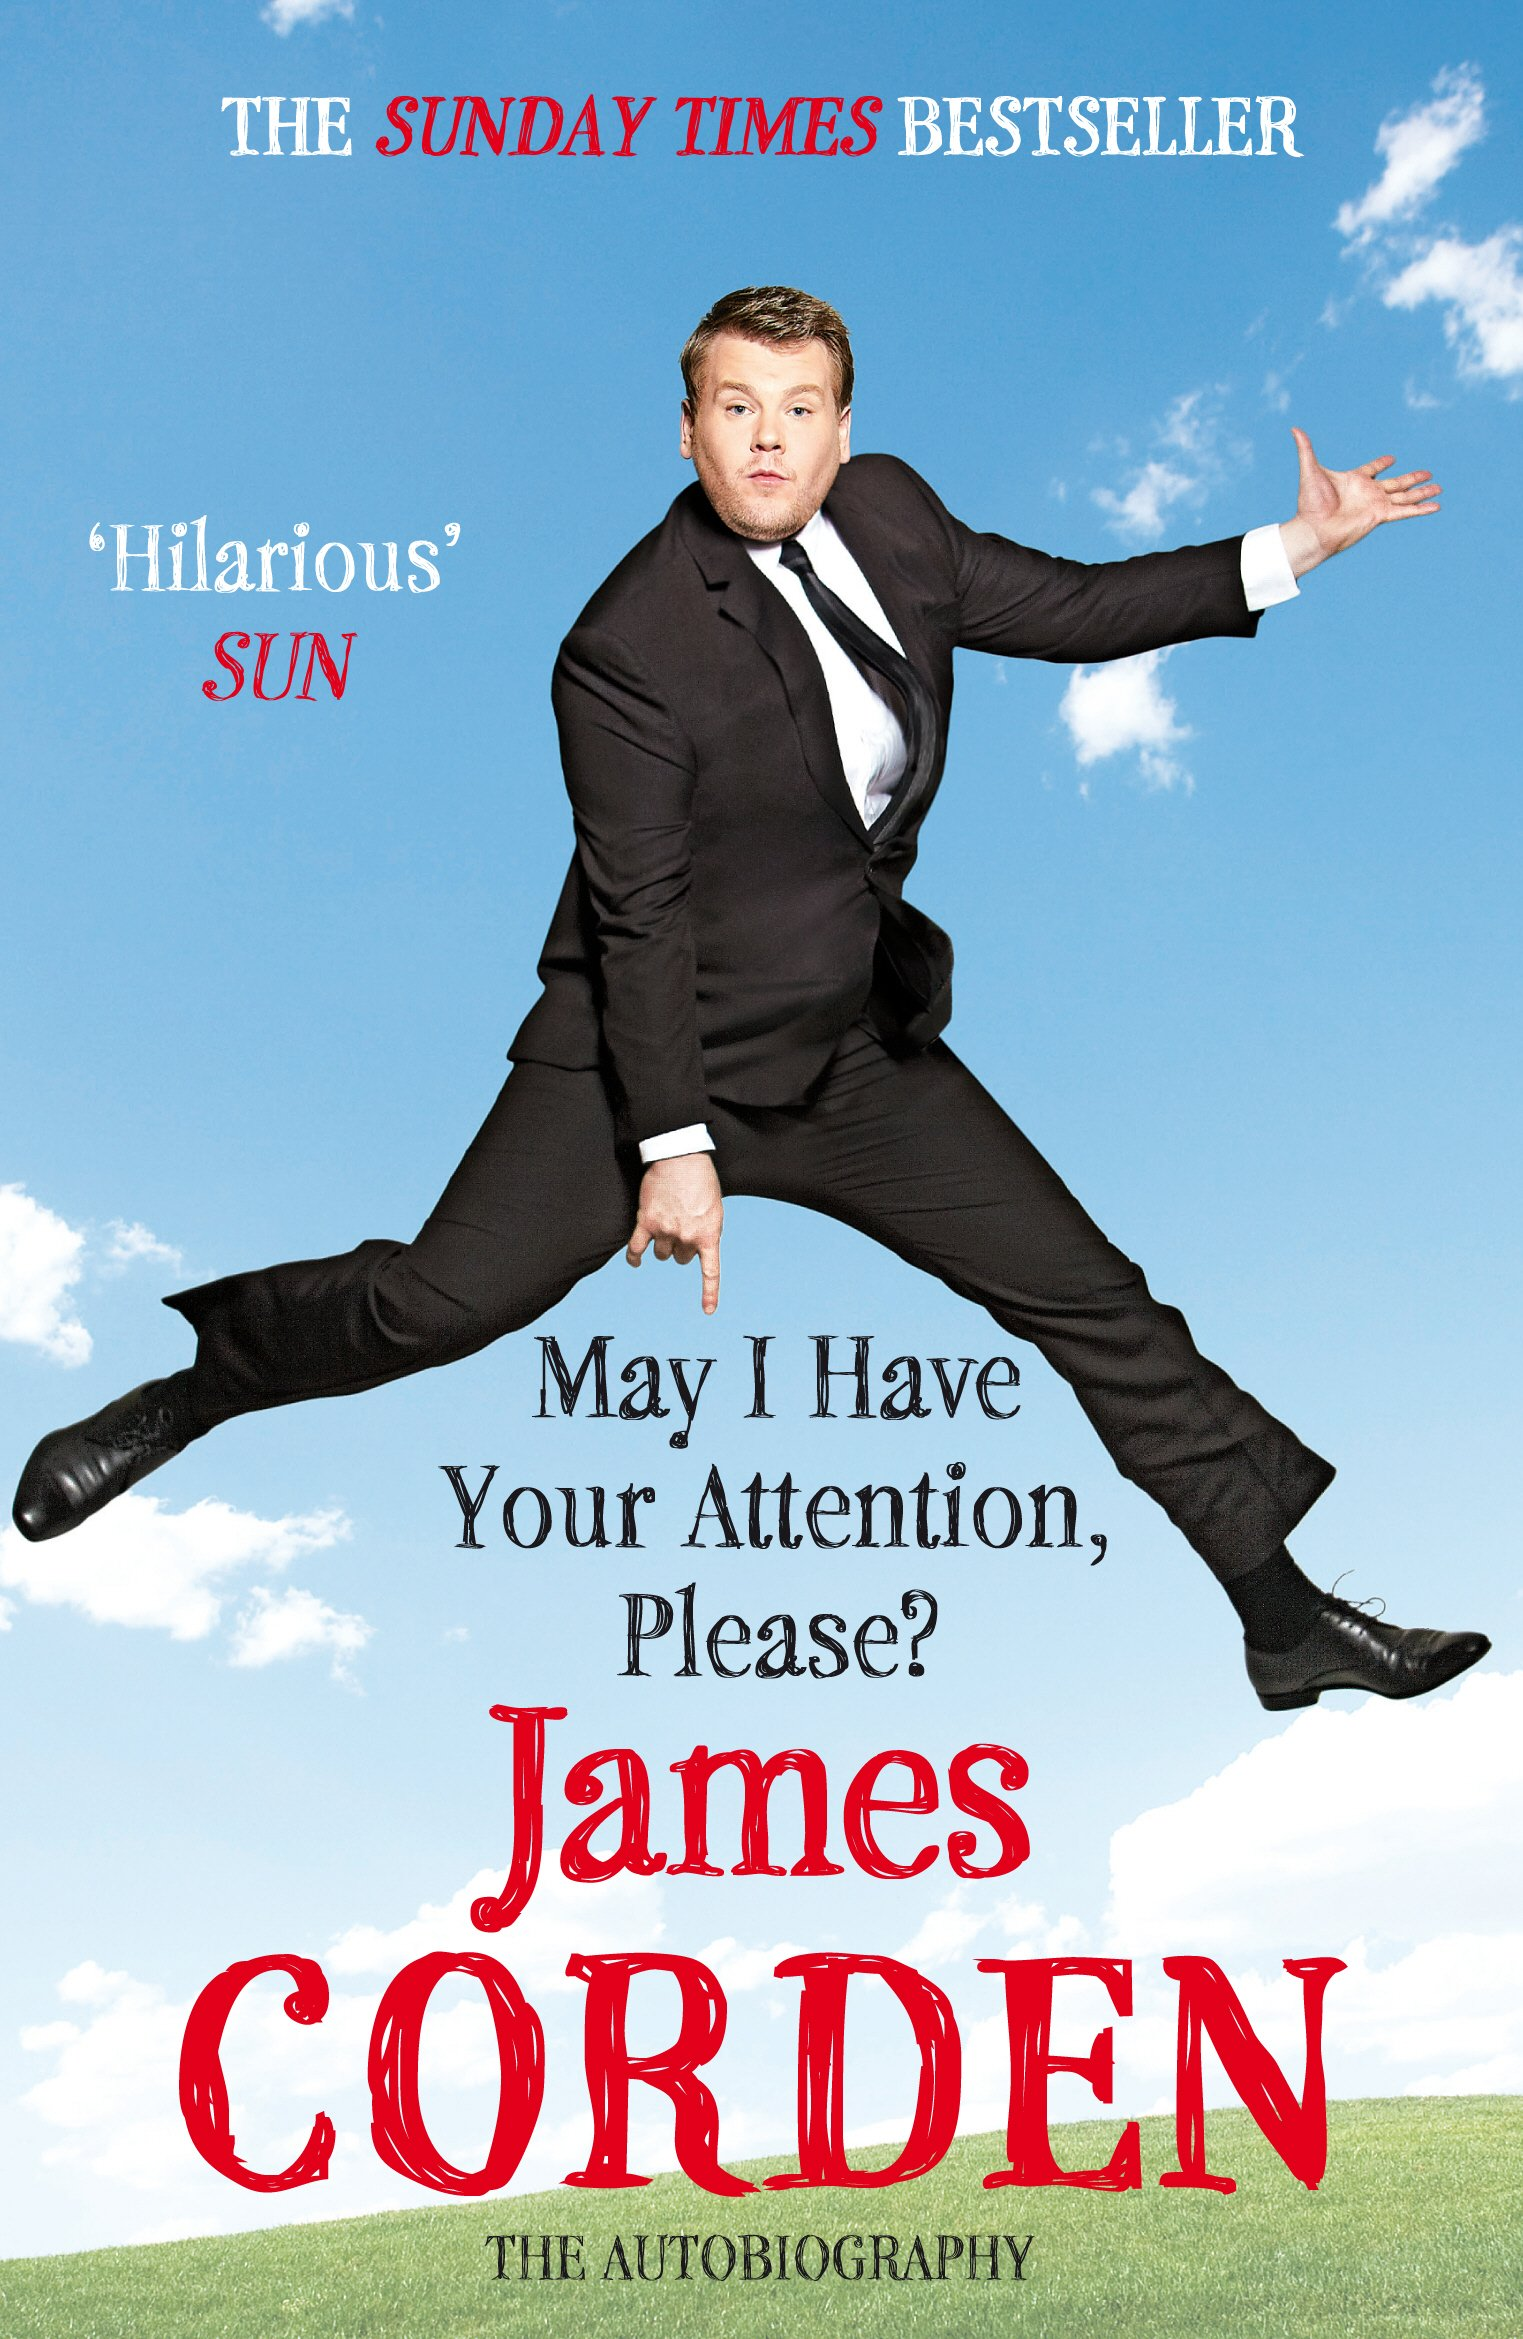 Image result for james corden book